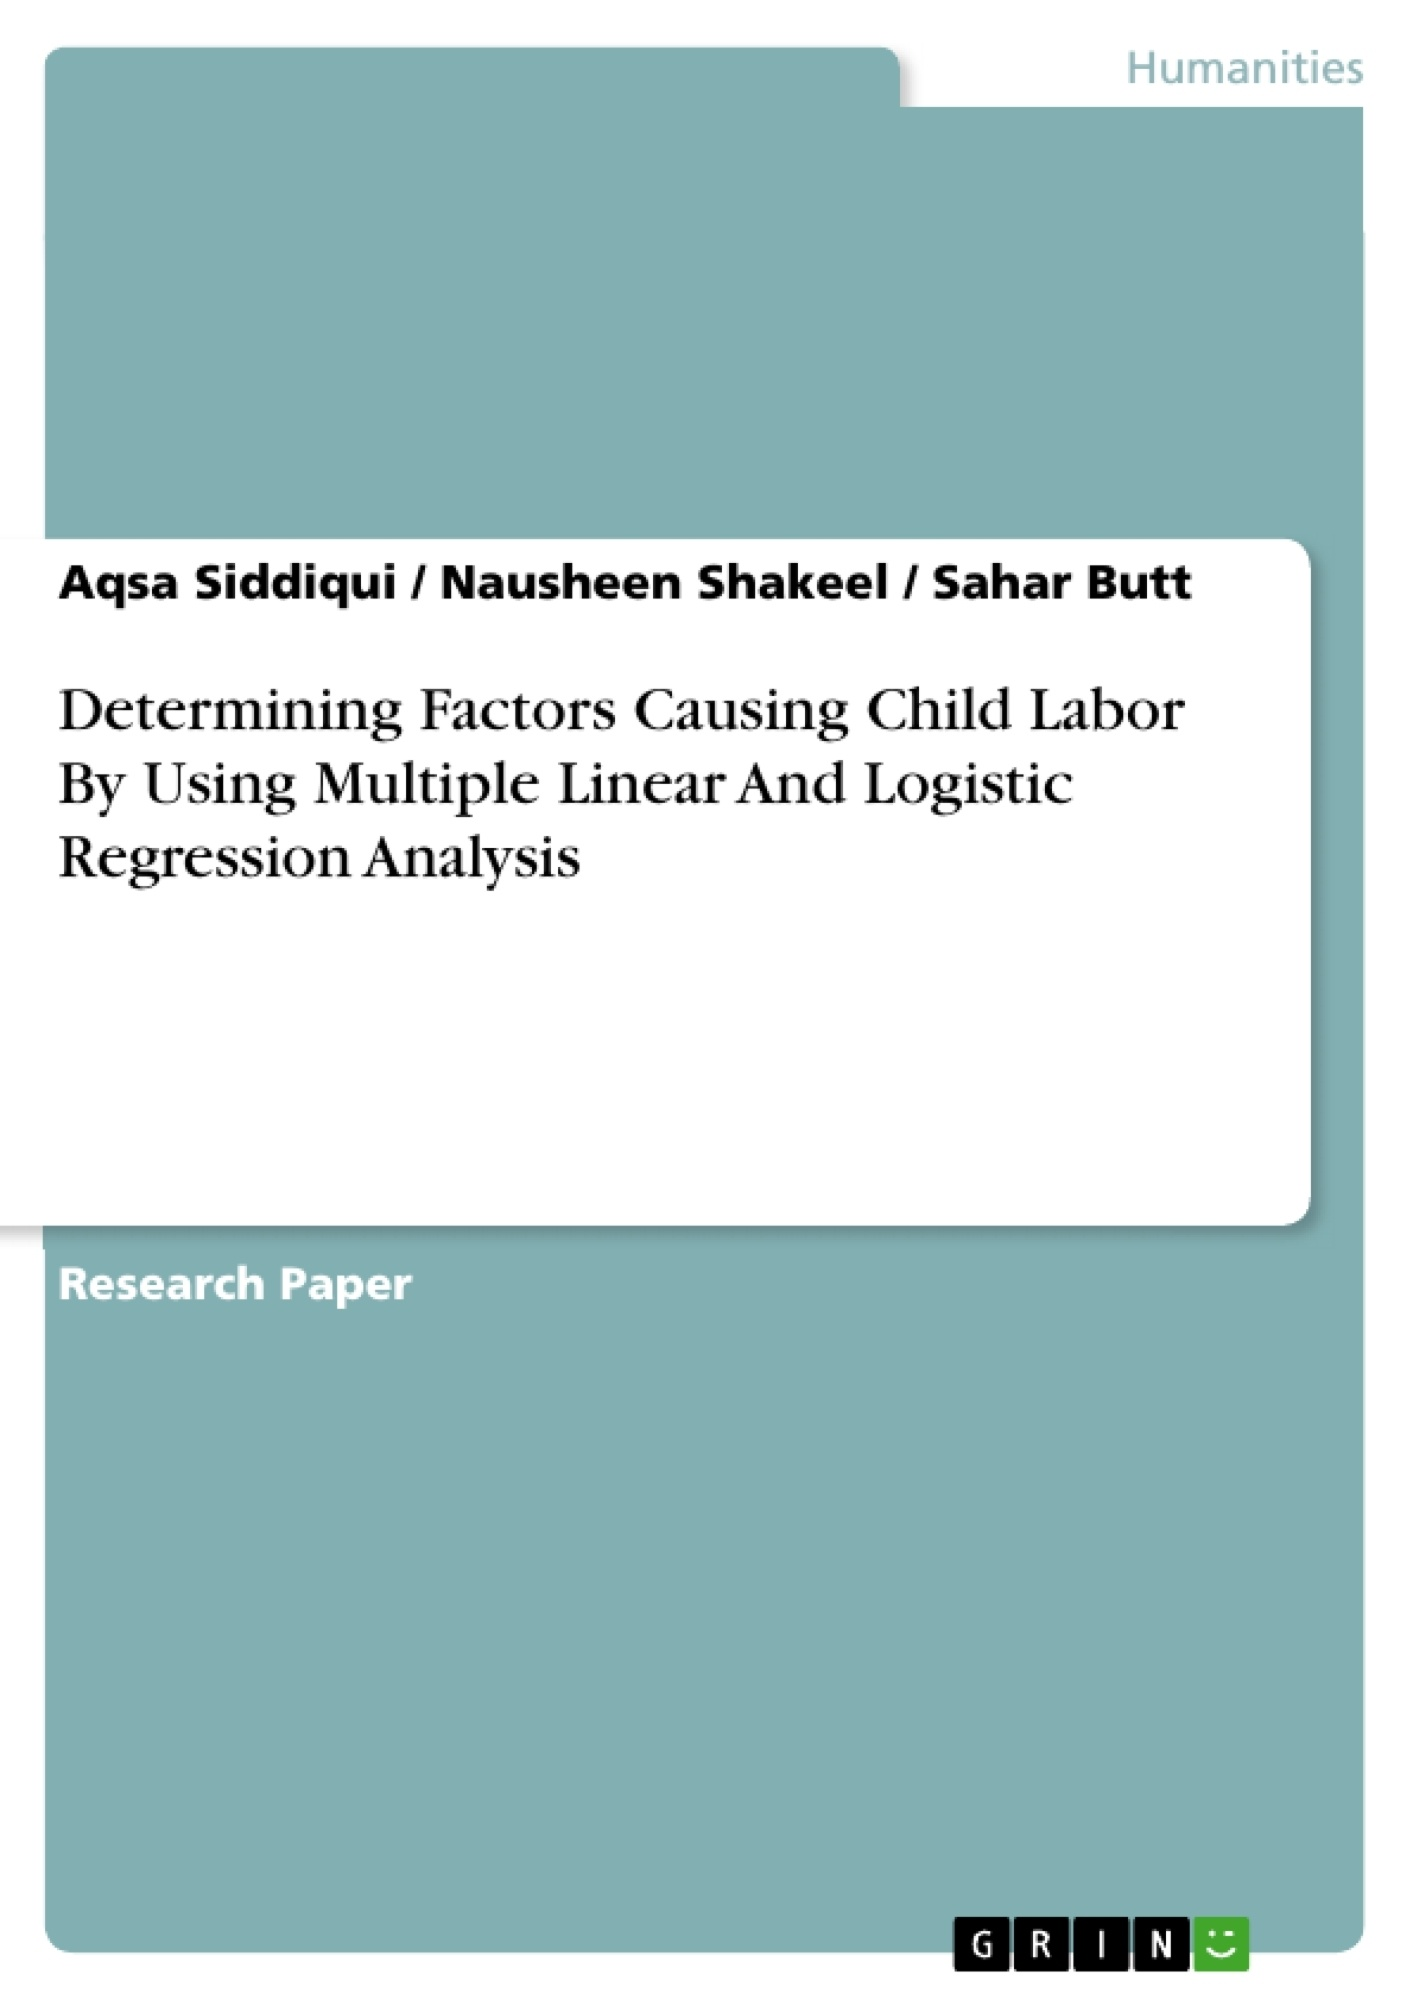 Title: Determining Factors Causing Child Labor By Using Multiple Linear And Logistic Regression Analysis